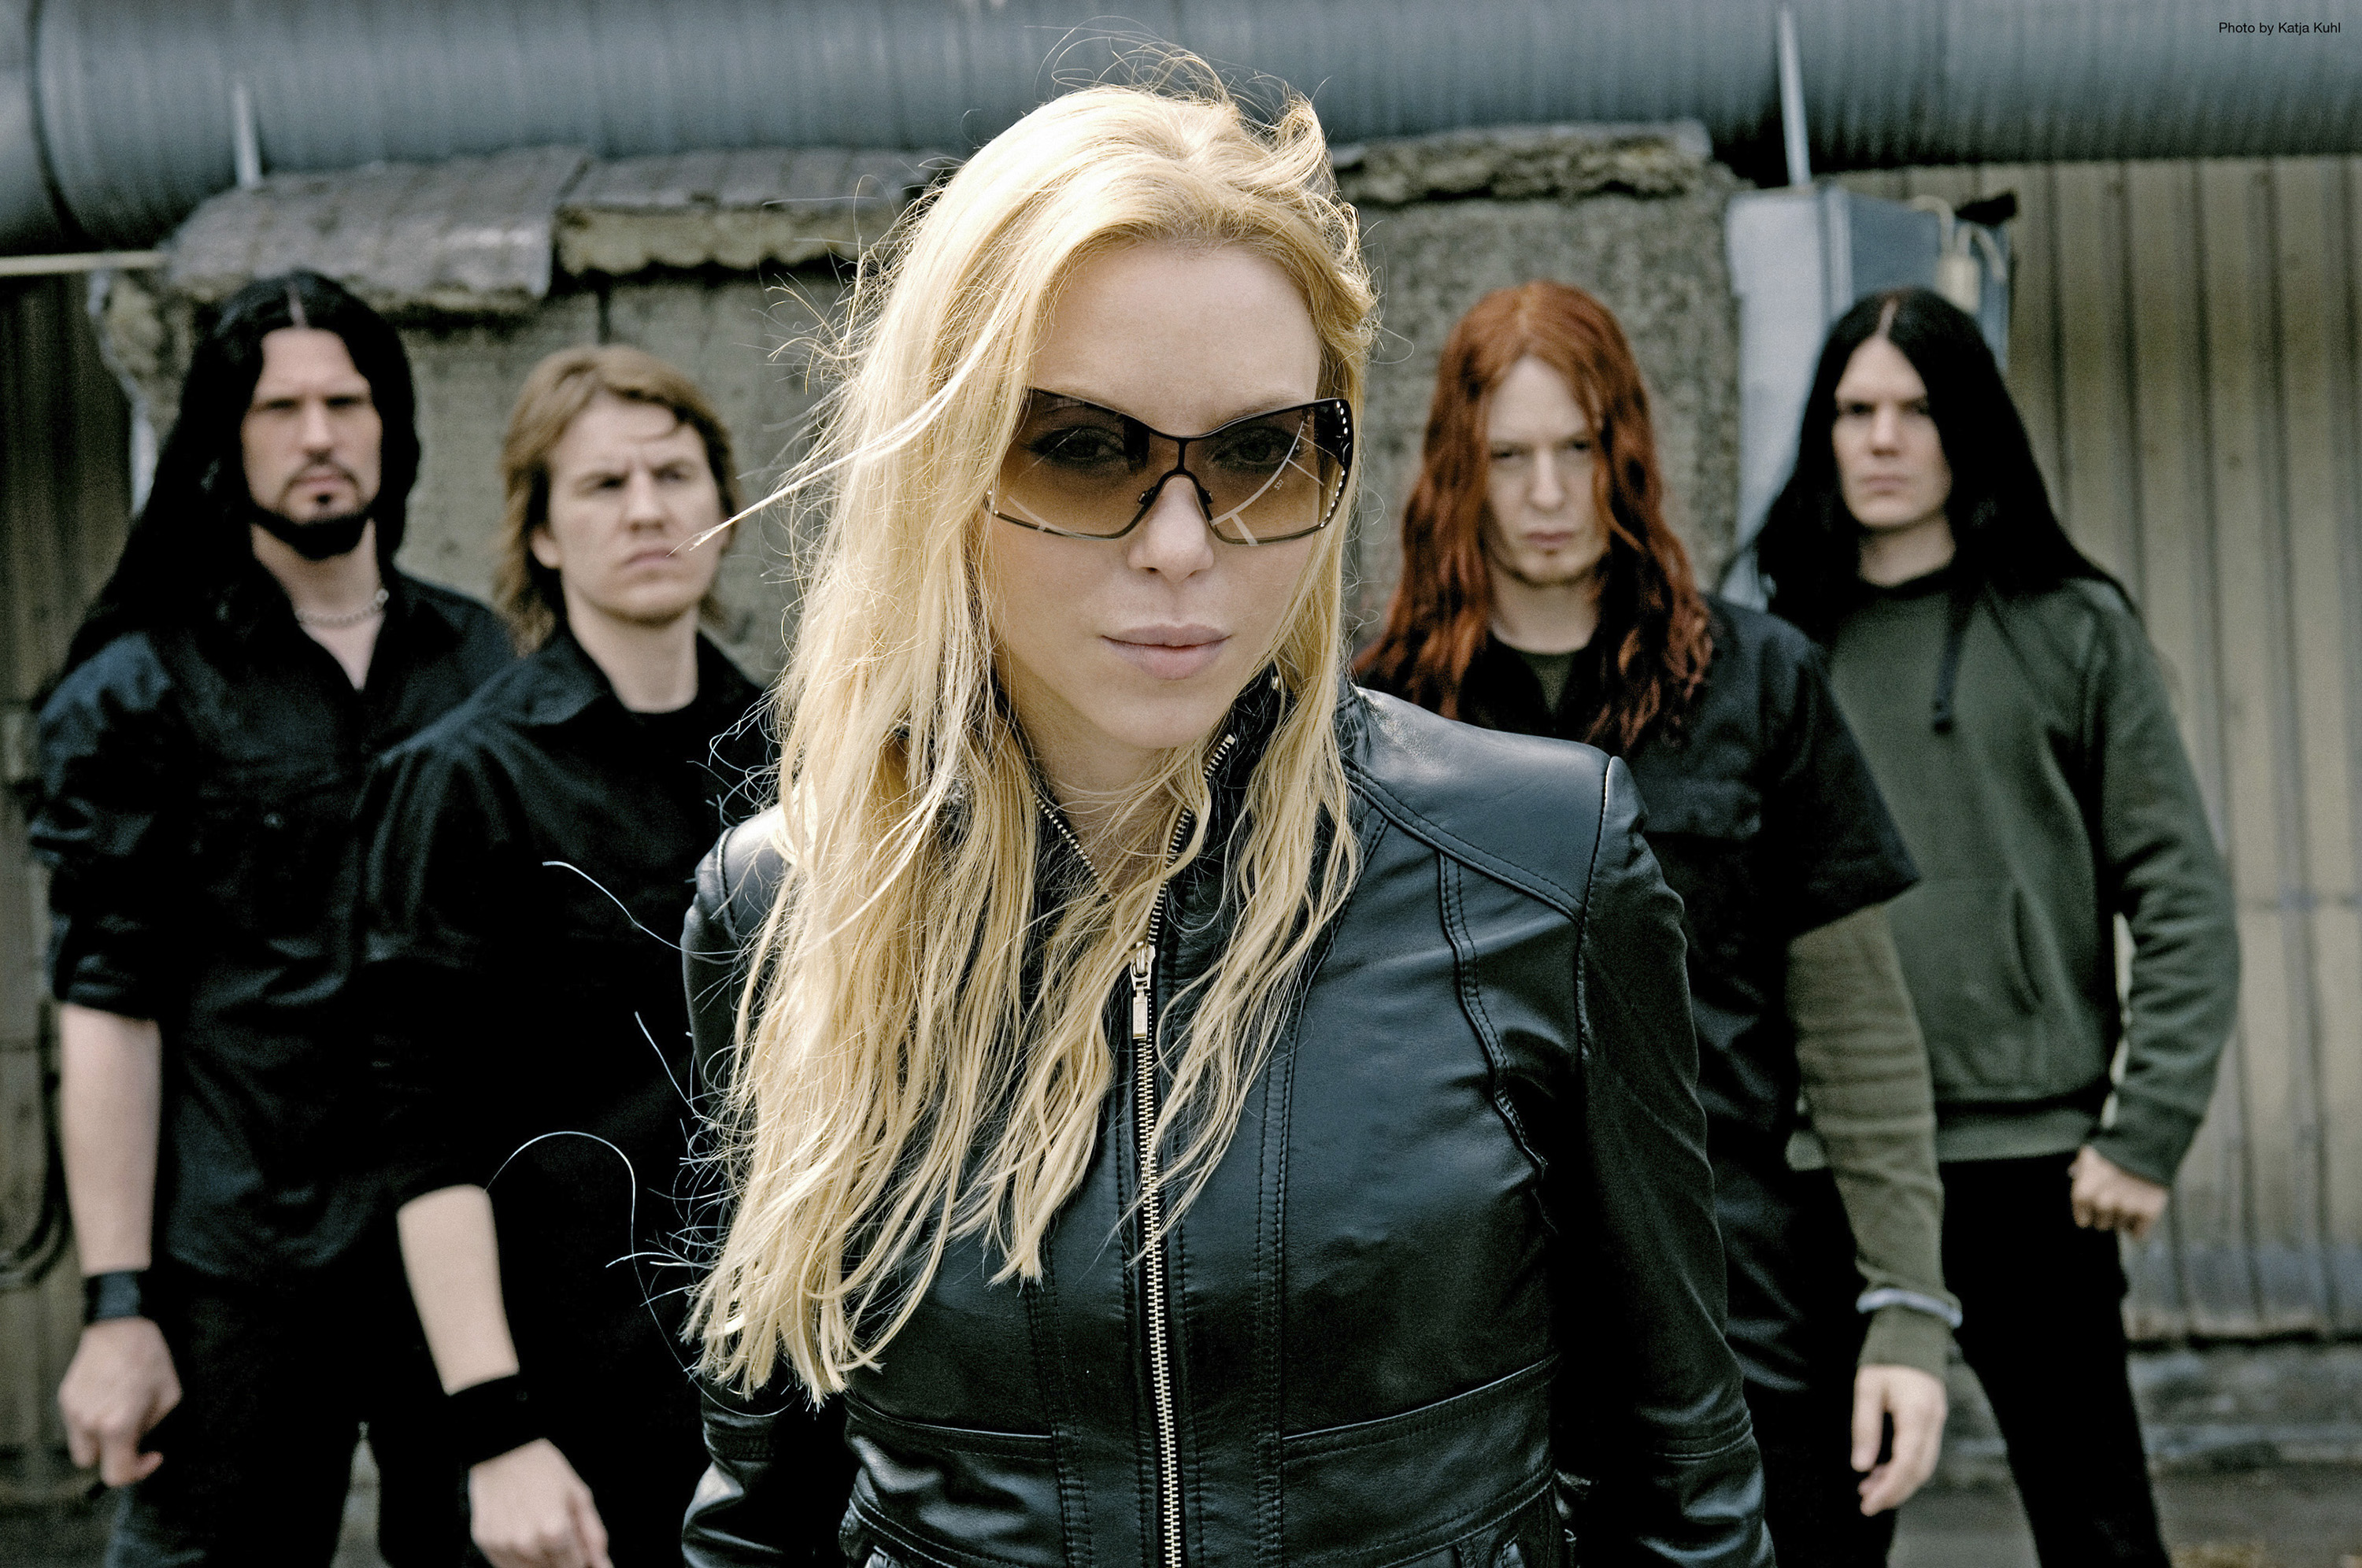 arch enemy groups bands heavy metal death hard rock music entertainment Angela Gossow blondes people